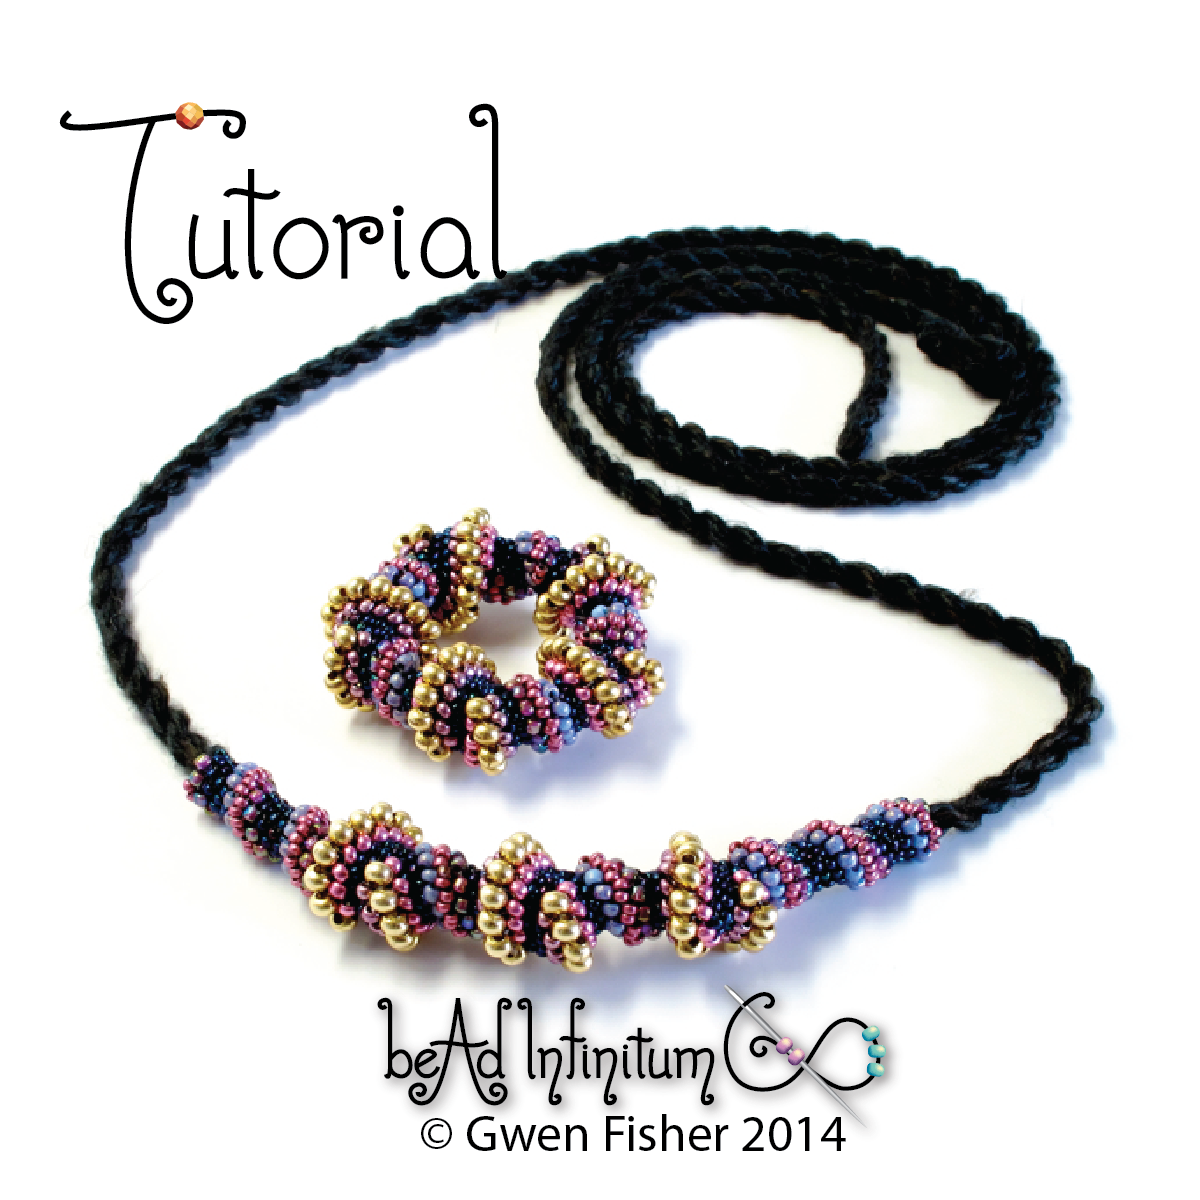 http://gwenbeads.blogspot.com/2014/12/replicating-dna-in-beads.html